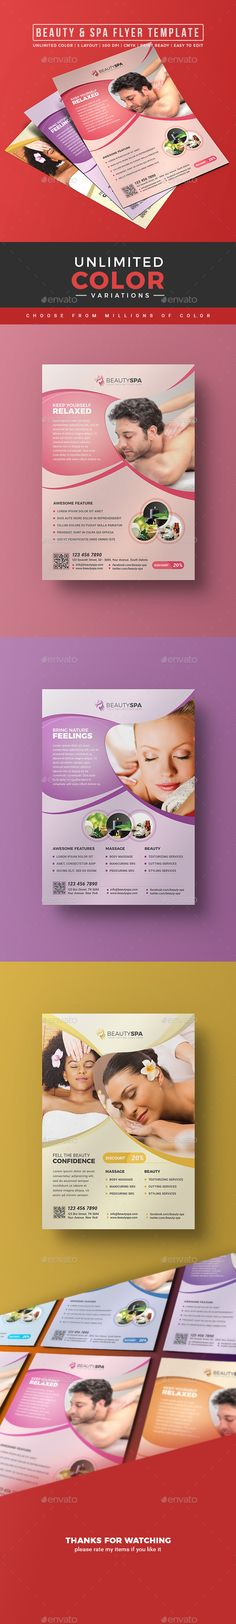 107 best Spa Flyer images on Pinterest Font logo, Fonts and - advertisement flyer template